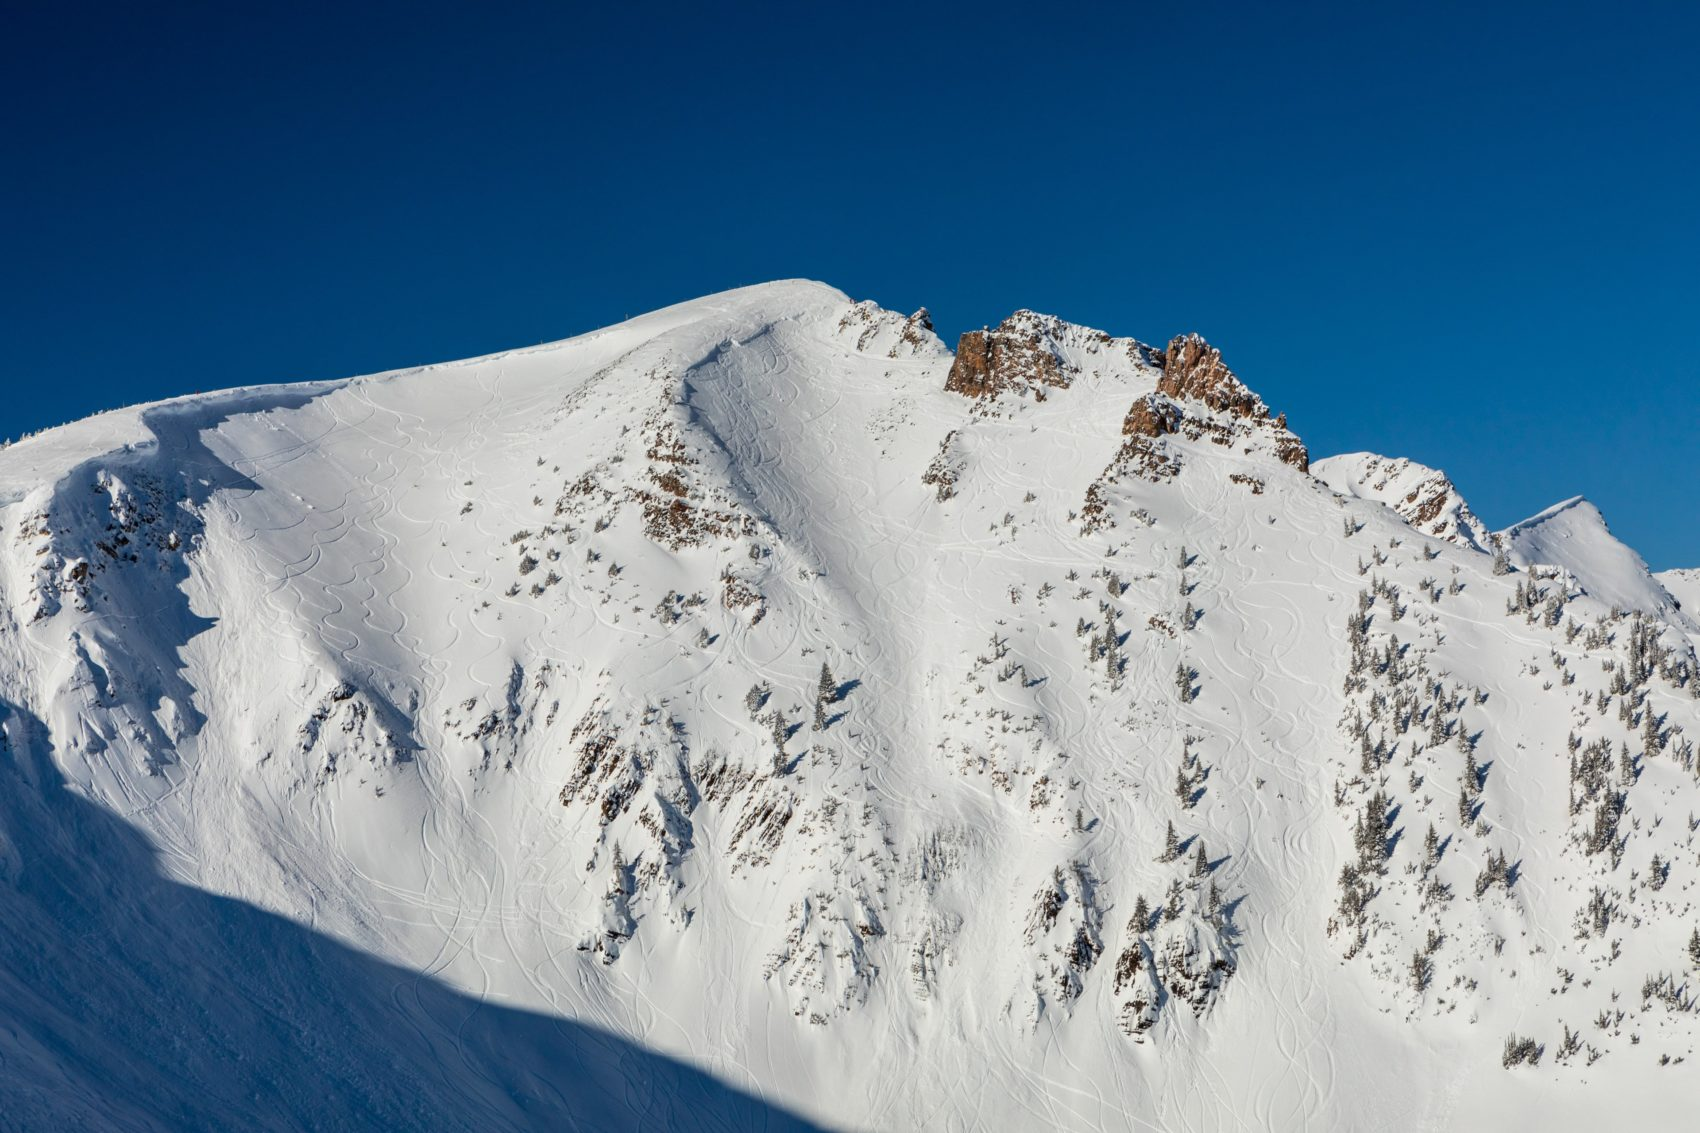 The Freeride World Tour features the Ozone face at Kicking Horse Mountain Resort.